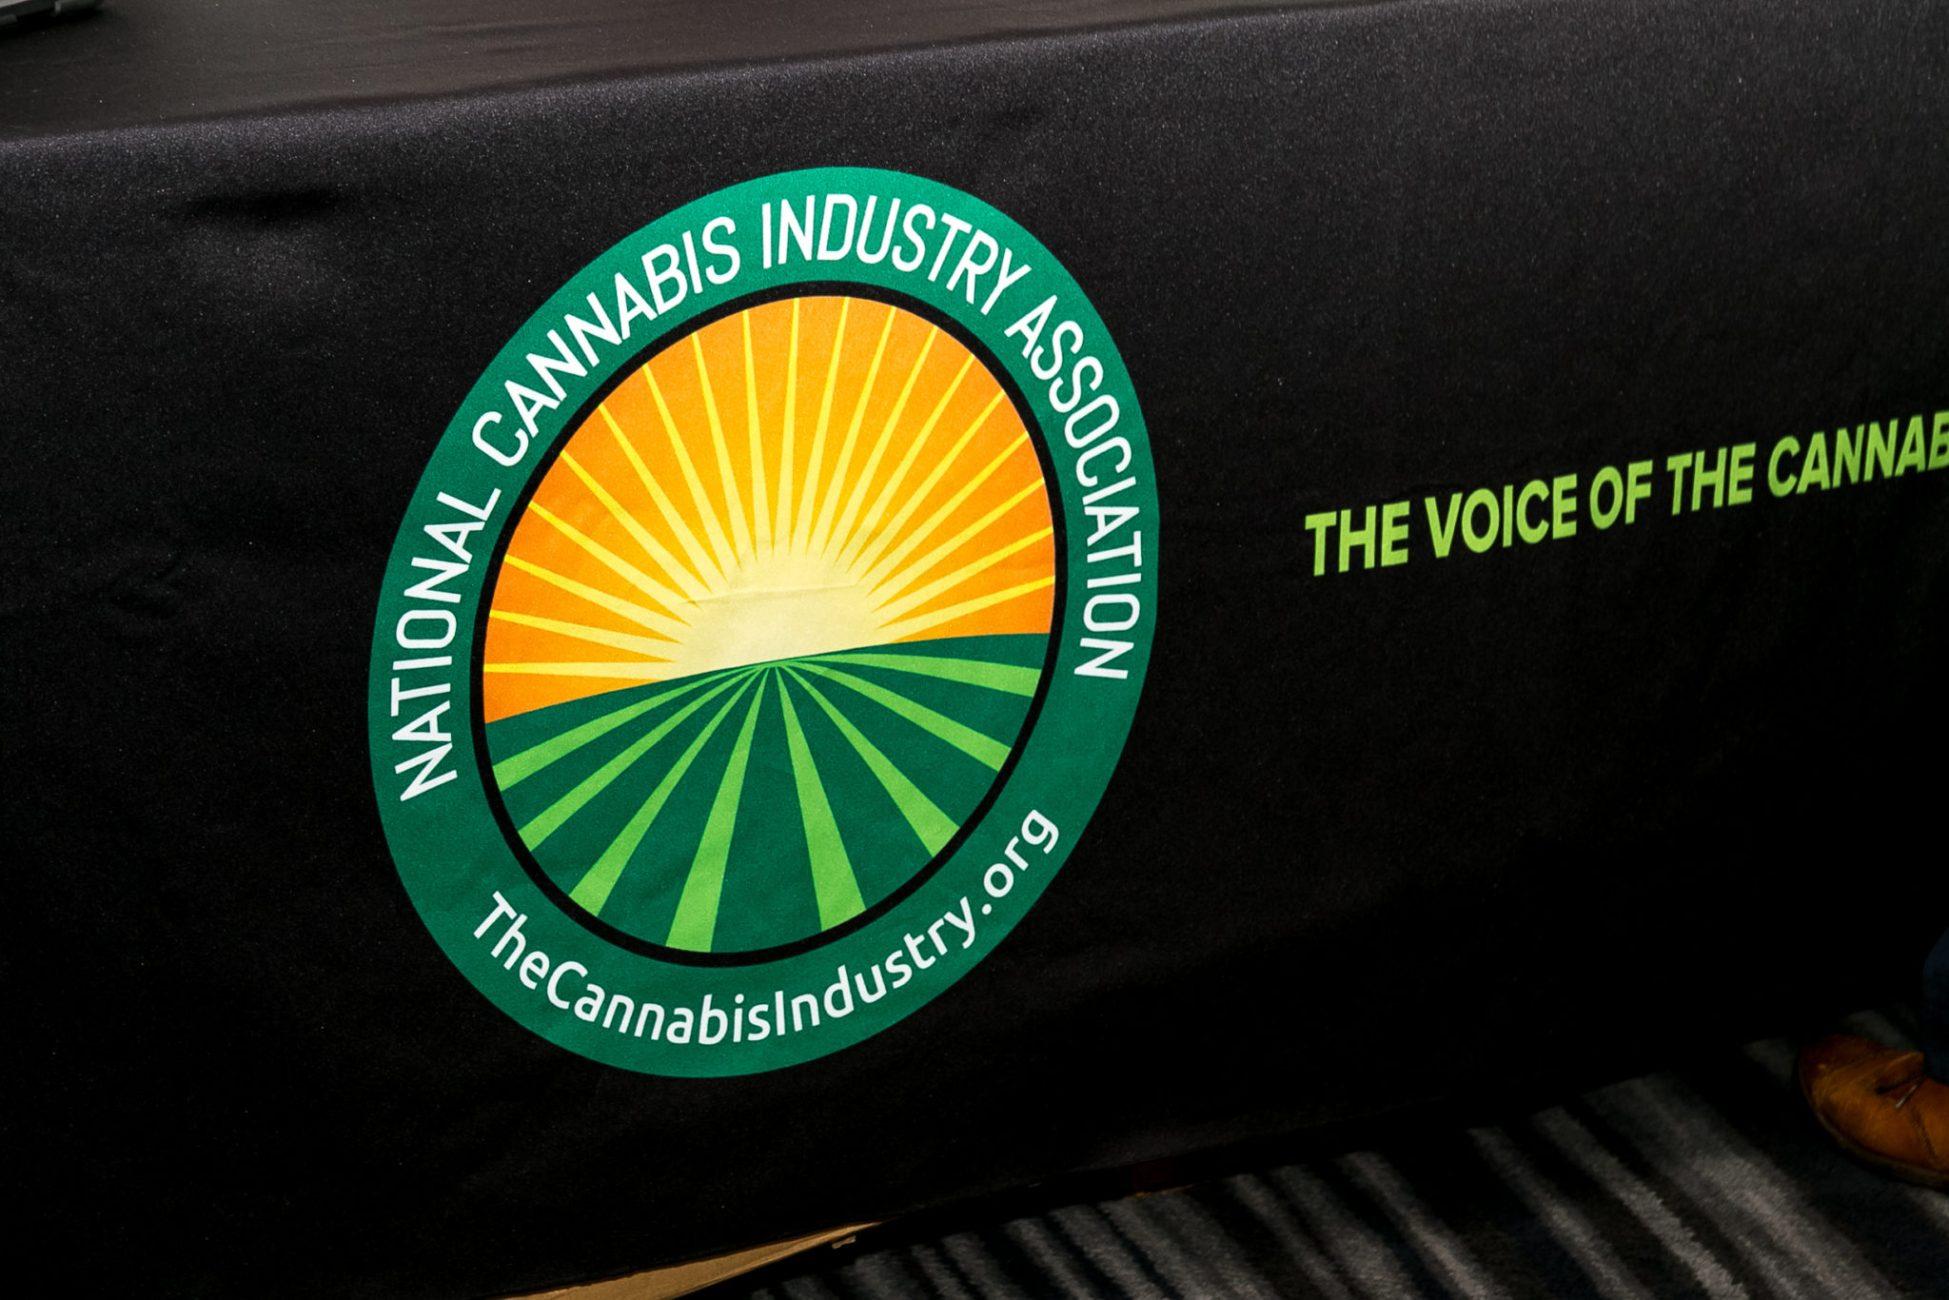 Cannabis Industry Voice - Podcasts | National Cannabis